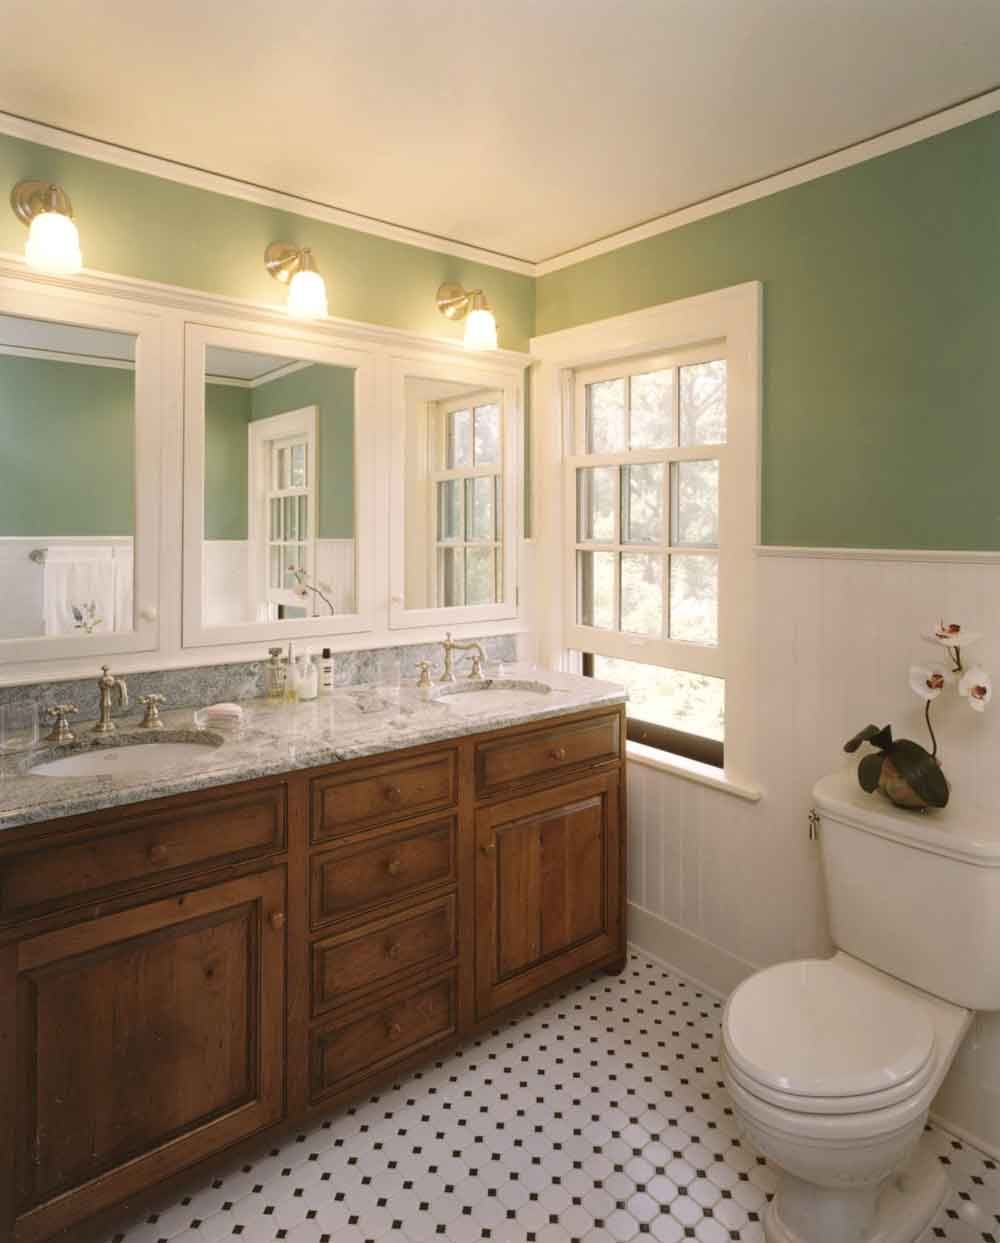 Beadboard Over Tile In Bathroom: Traditional Bathroom With White Beadboard, Marble Counters